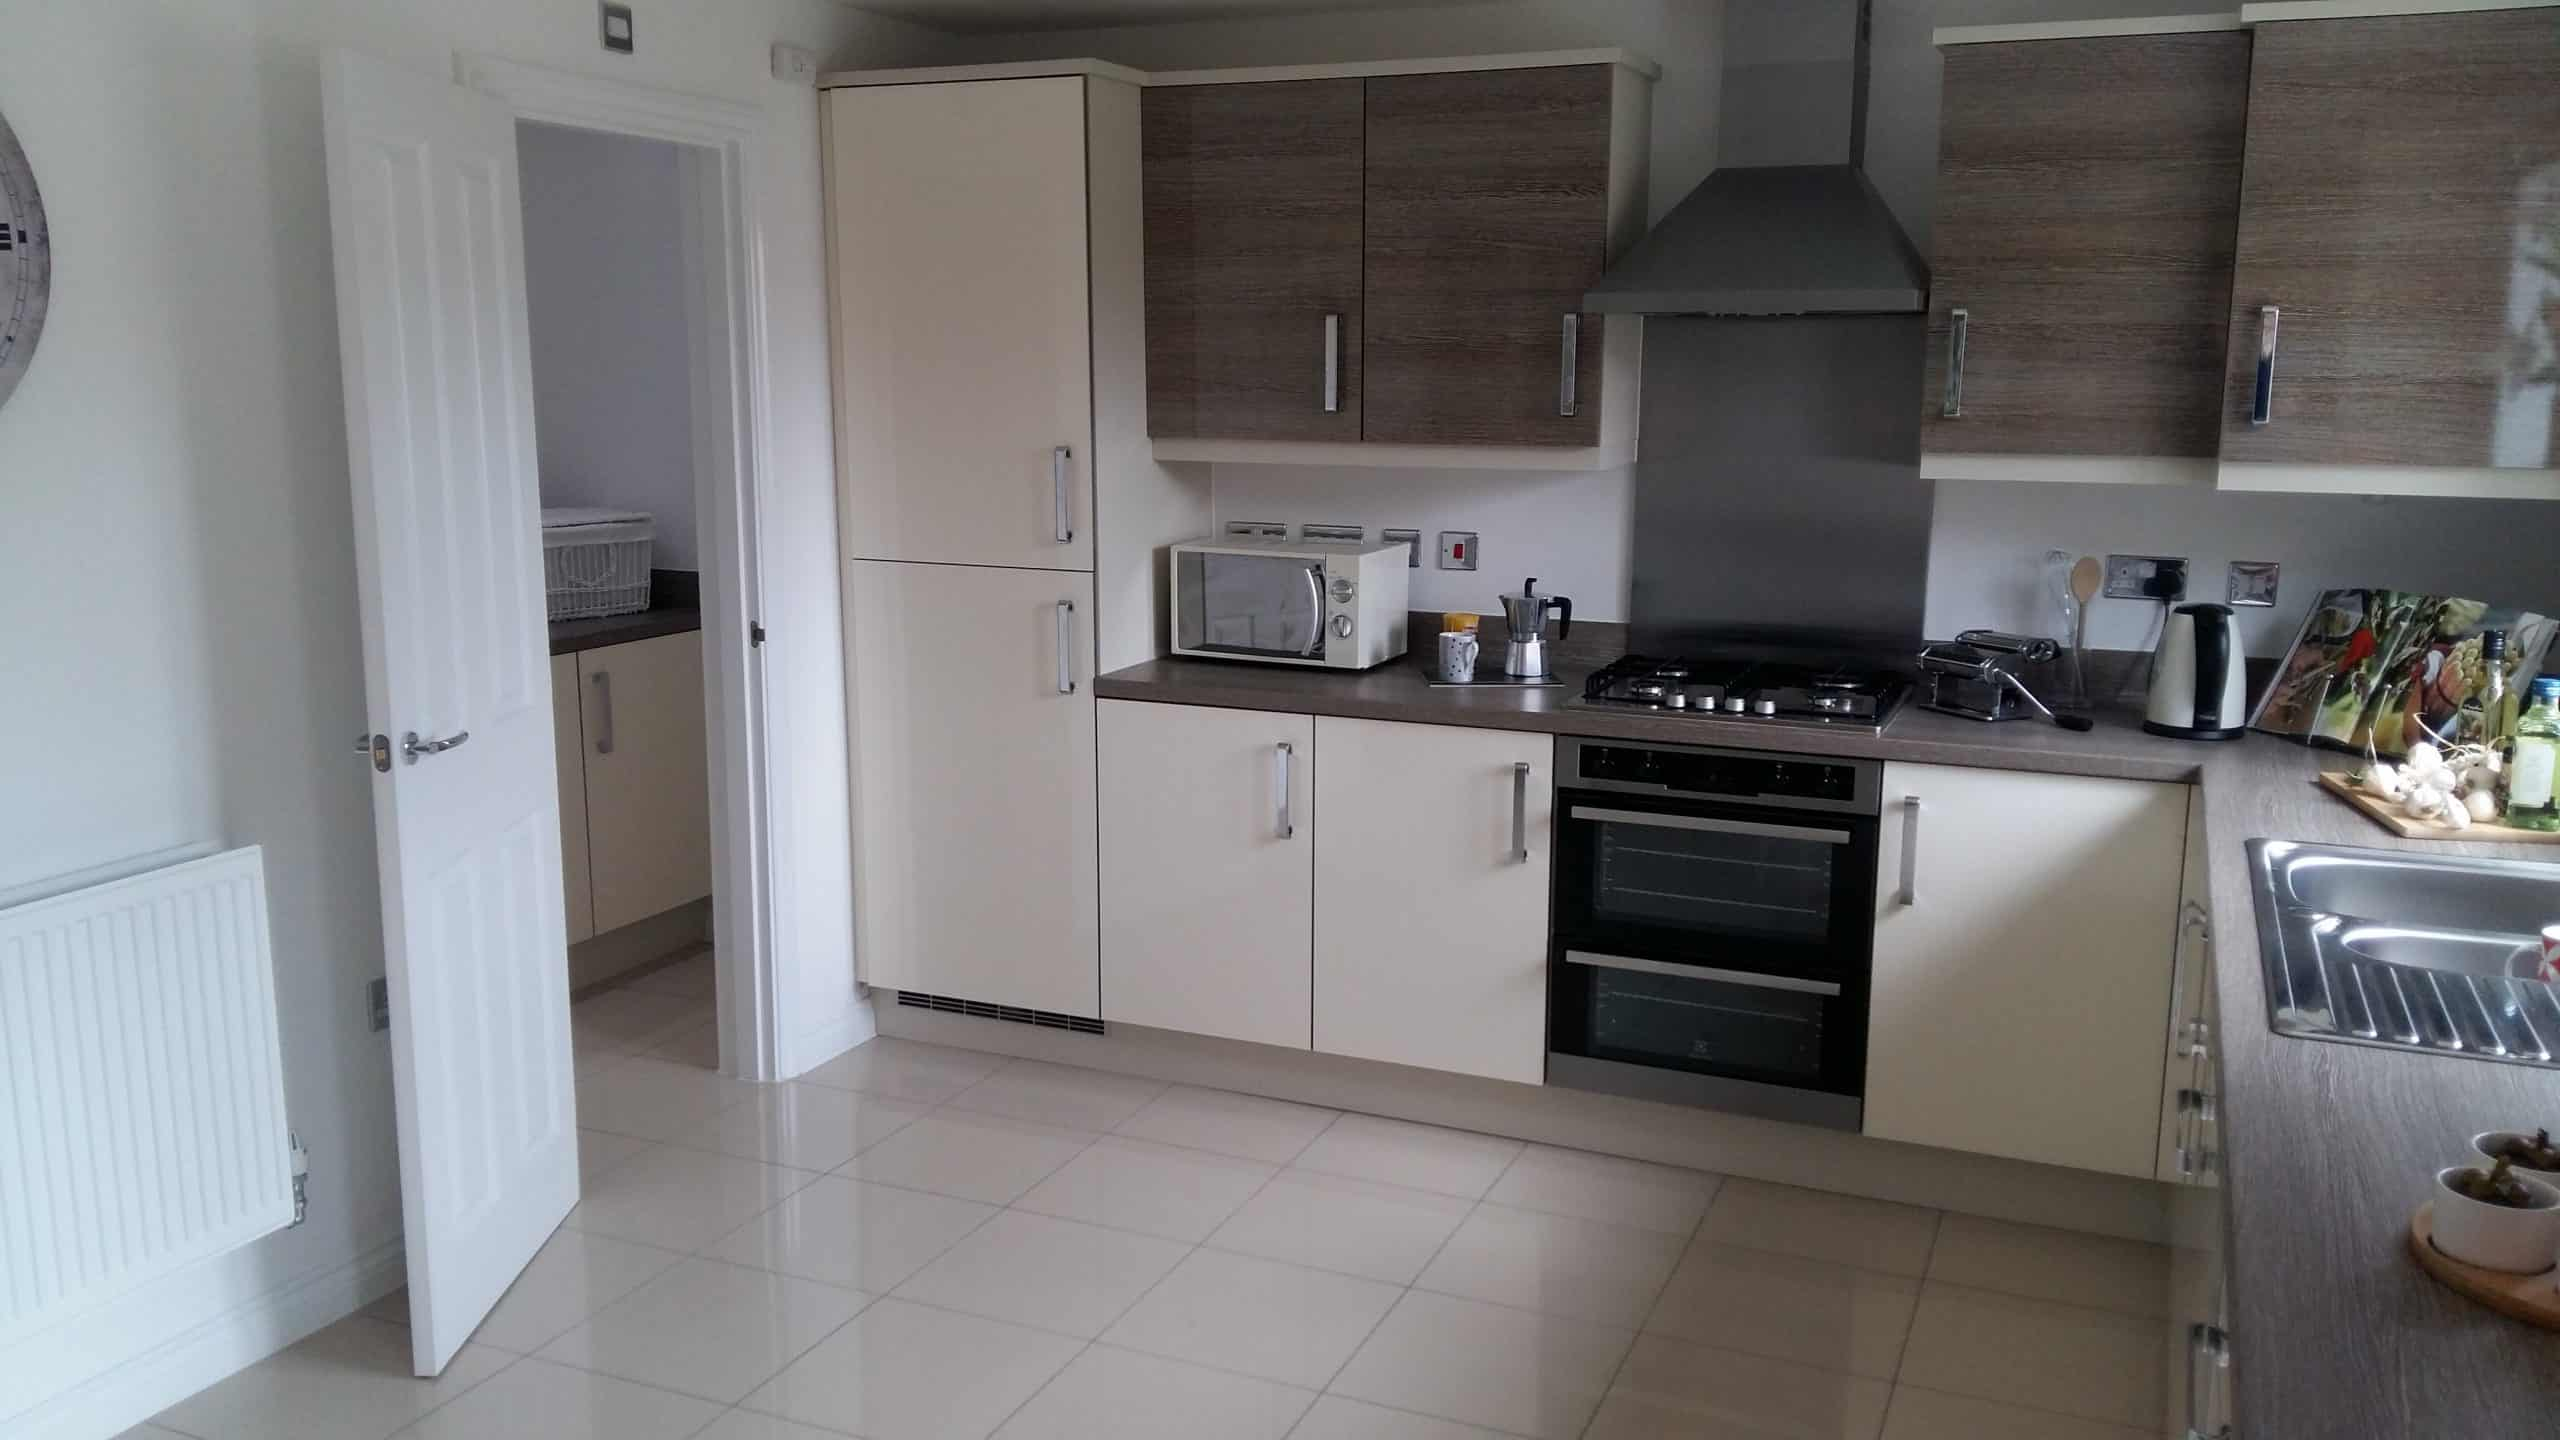 A new construction show home with build in fridge freezer and cooker